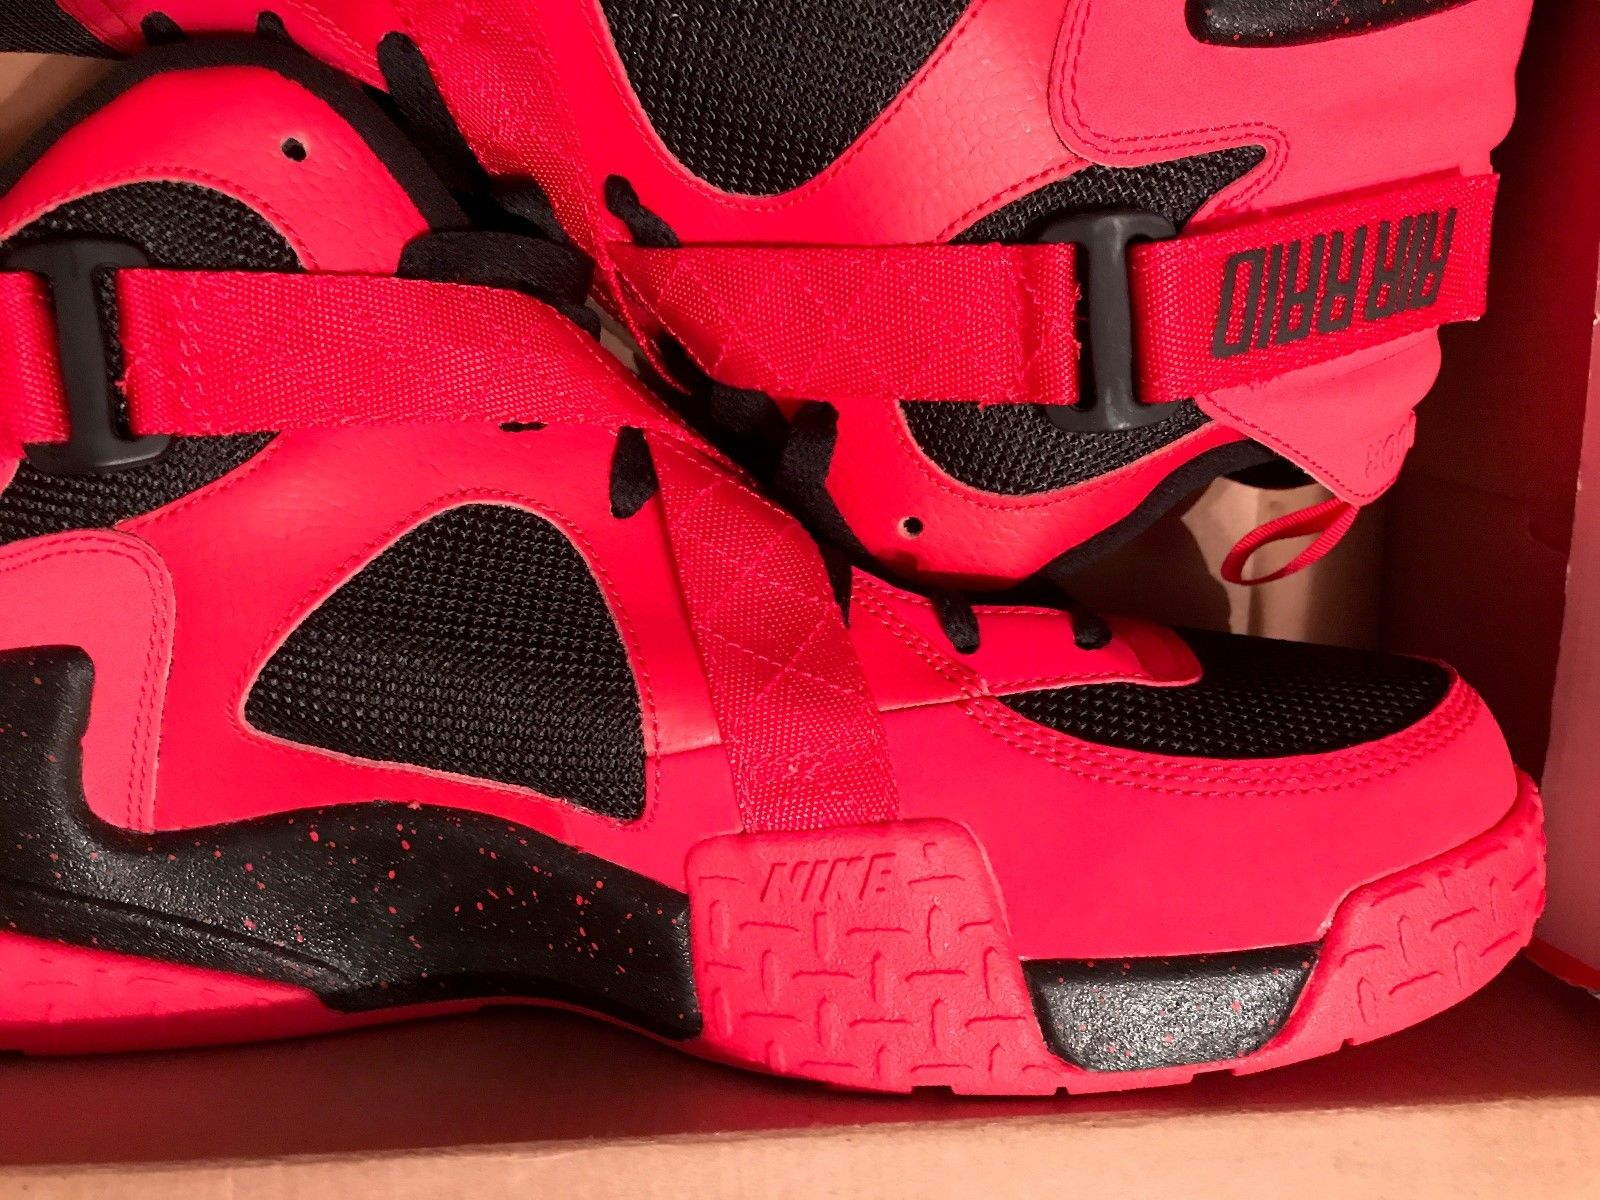 Image of Nike Air Raid Lifestyle Shoes Size 14 Red Black White New